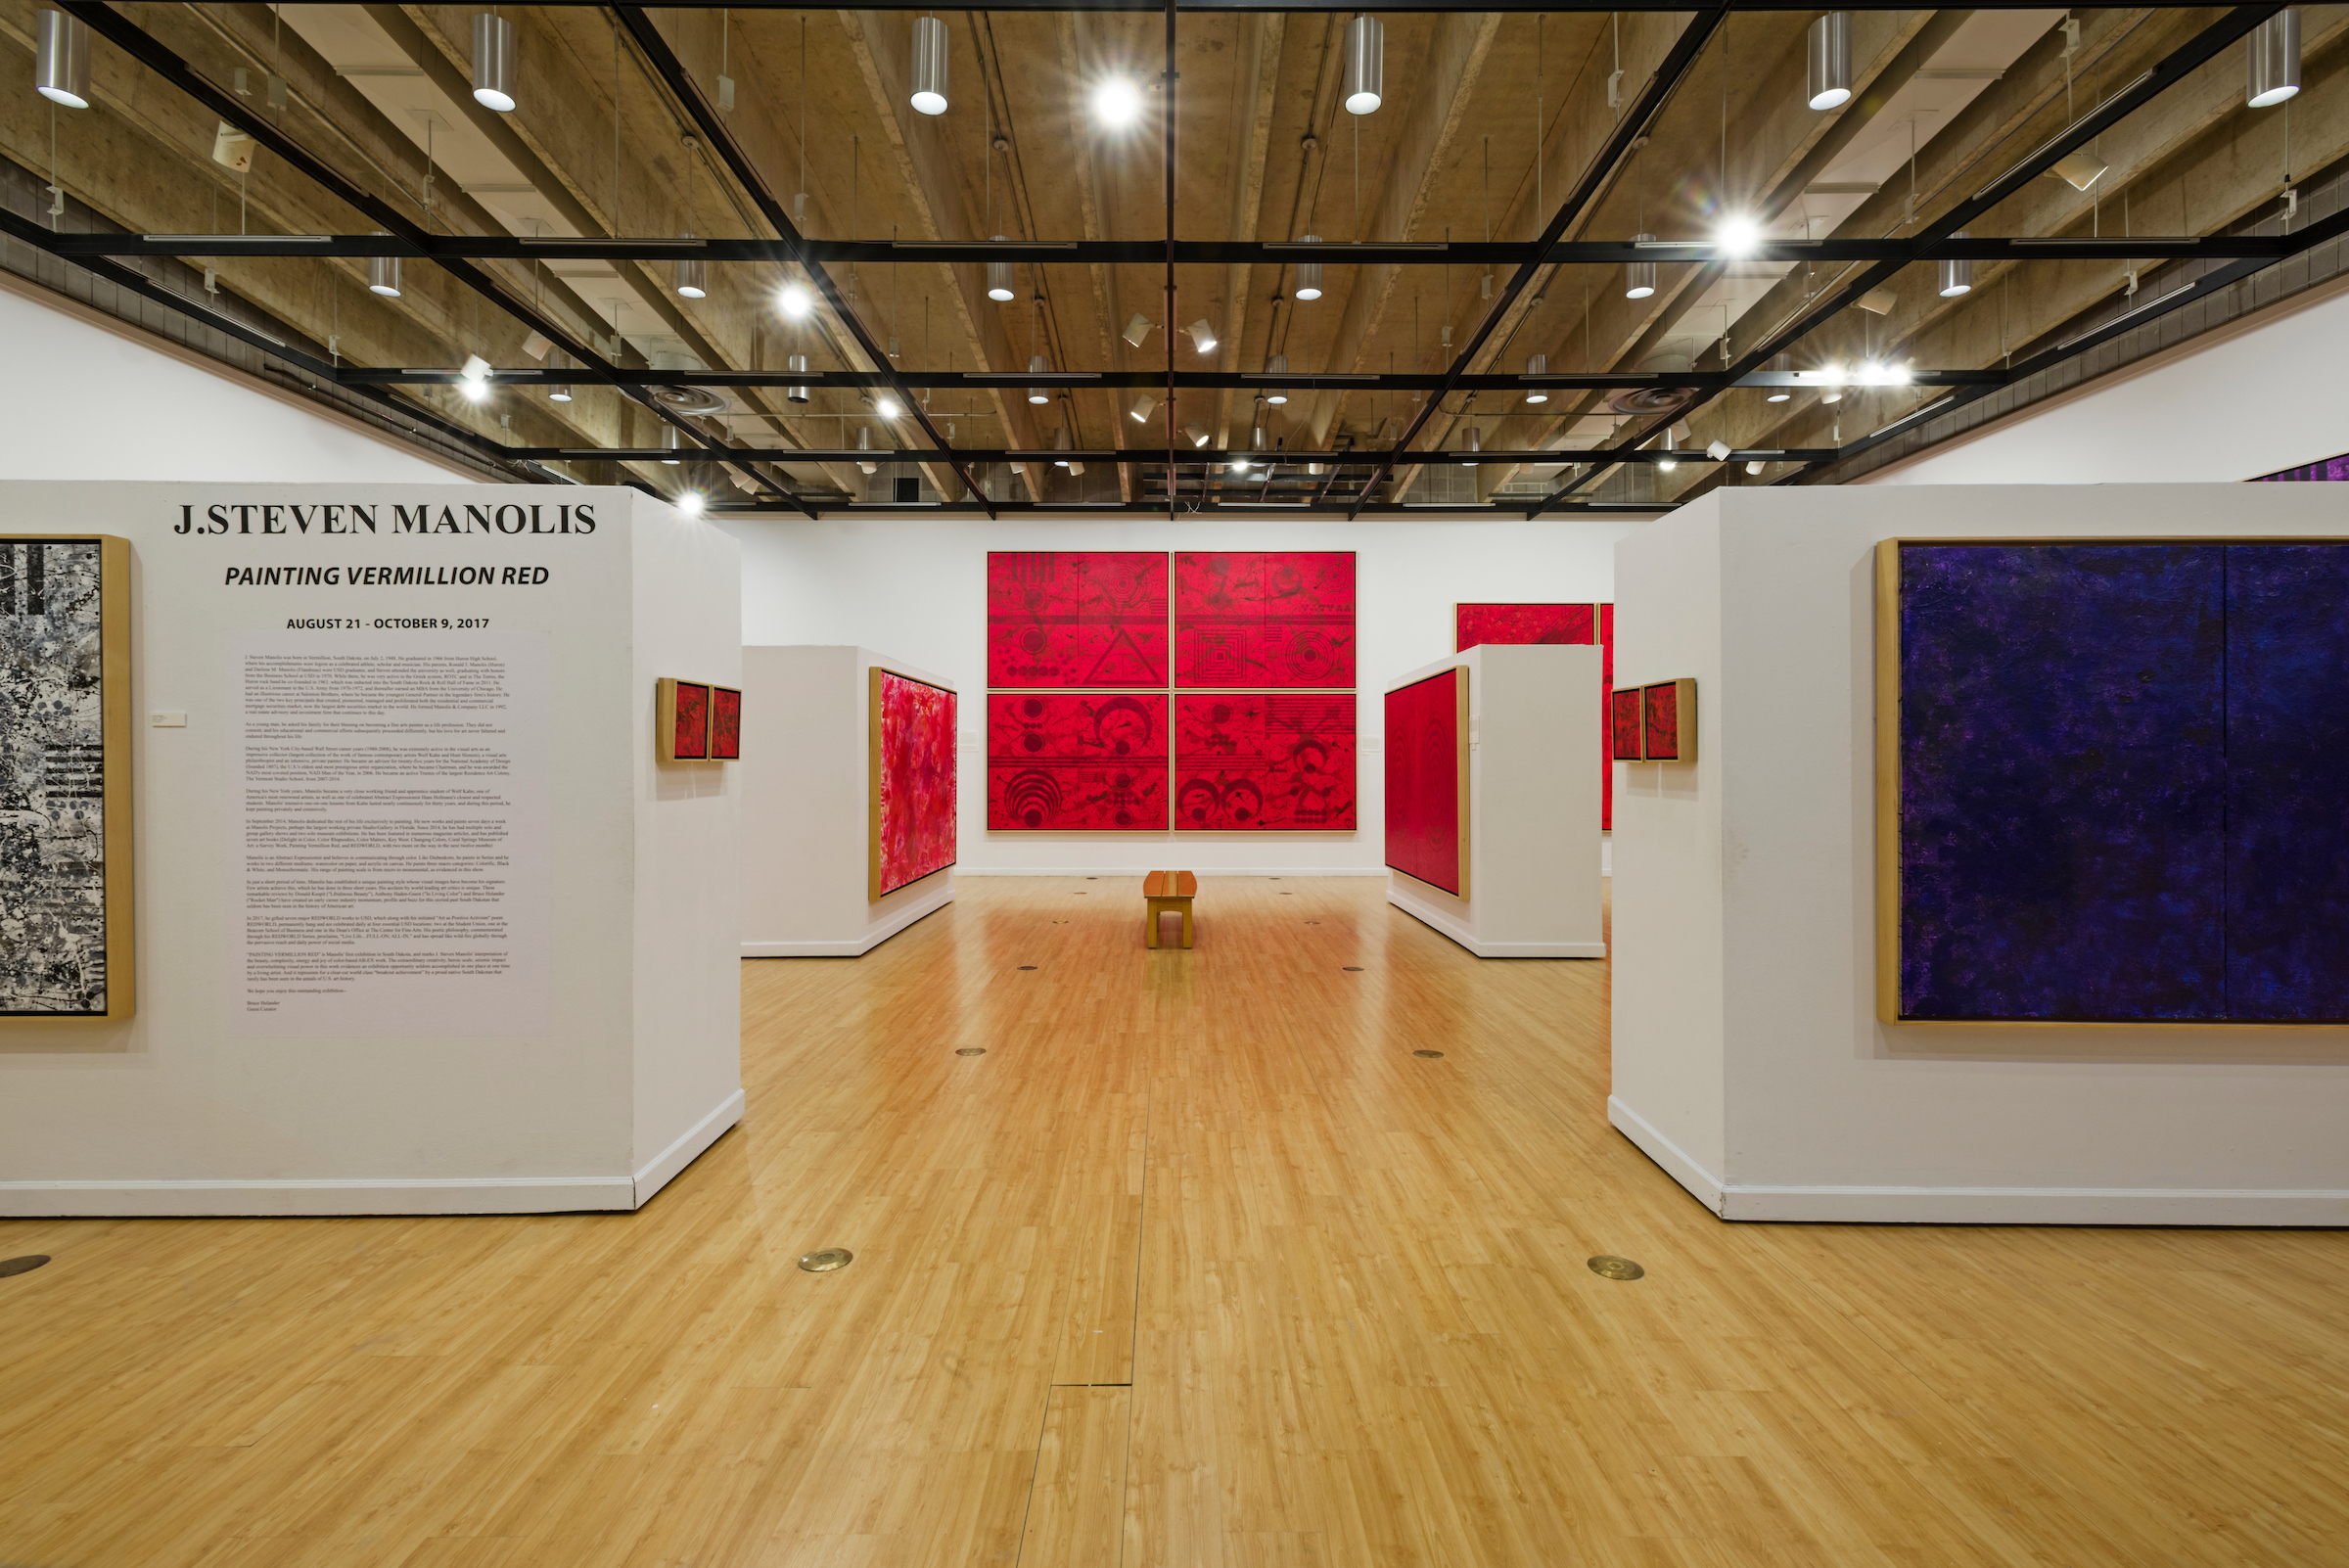 "J. Steven Manolis' Solo Exhibition Show, "" Painting Vermillion Red ,"" at the John A. Day Gallery in the Warren M. Lee Center for Fine Arts, USD, Vermillion, South Dakota."